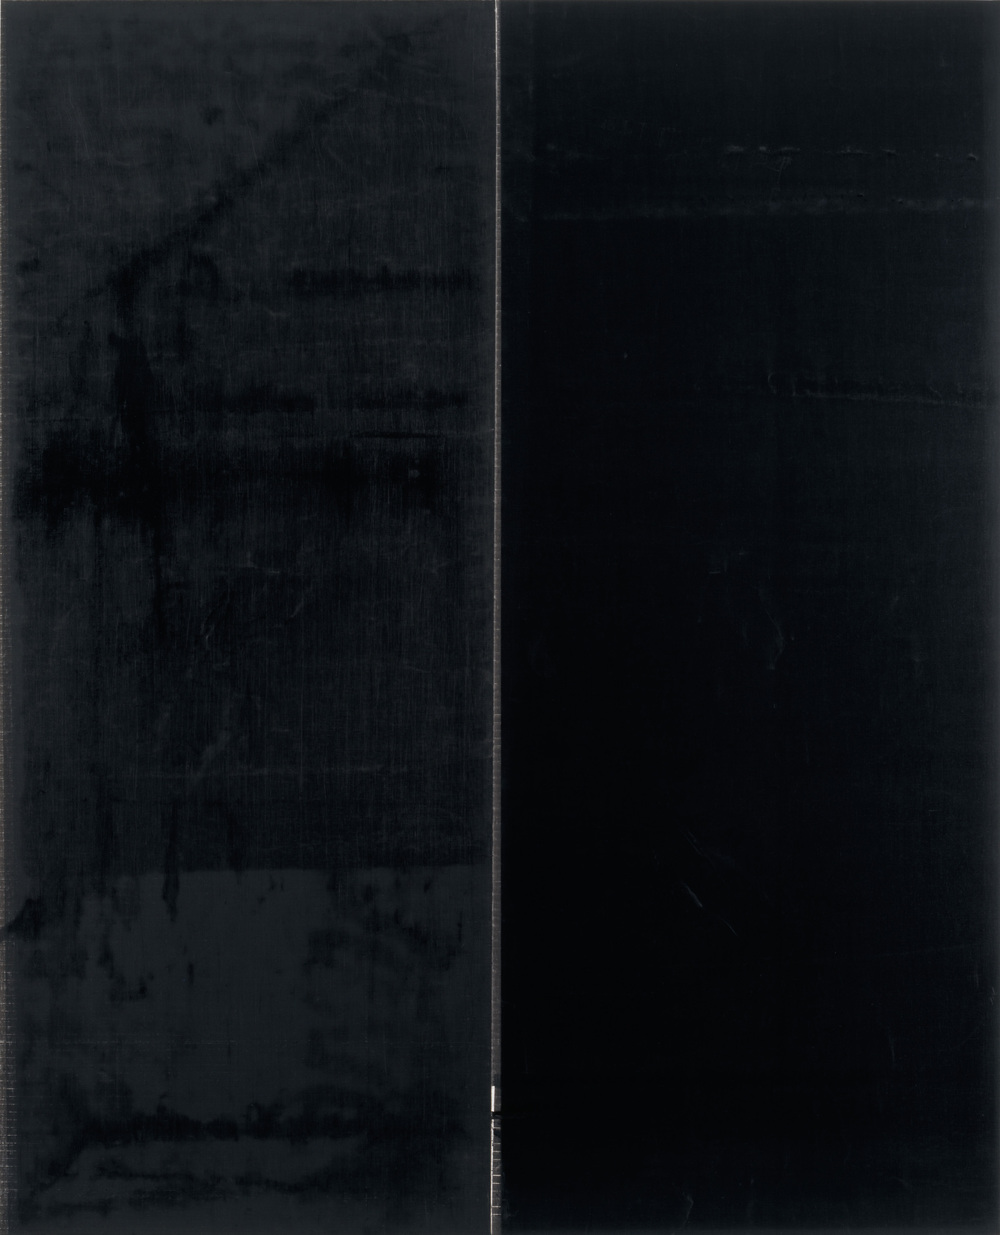 contemporary painting essays How soon was now what is modern and contemporary art by francis halsall & declan long 1 – in a dark room (i) in a dark room, on a large screen, three indonesian.